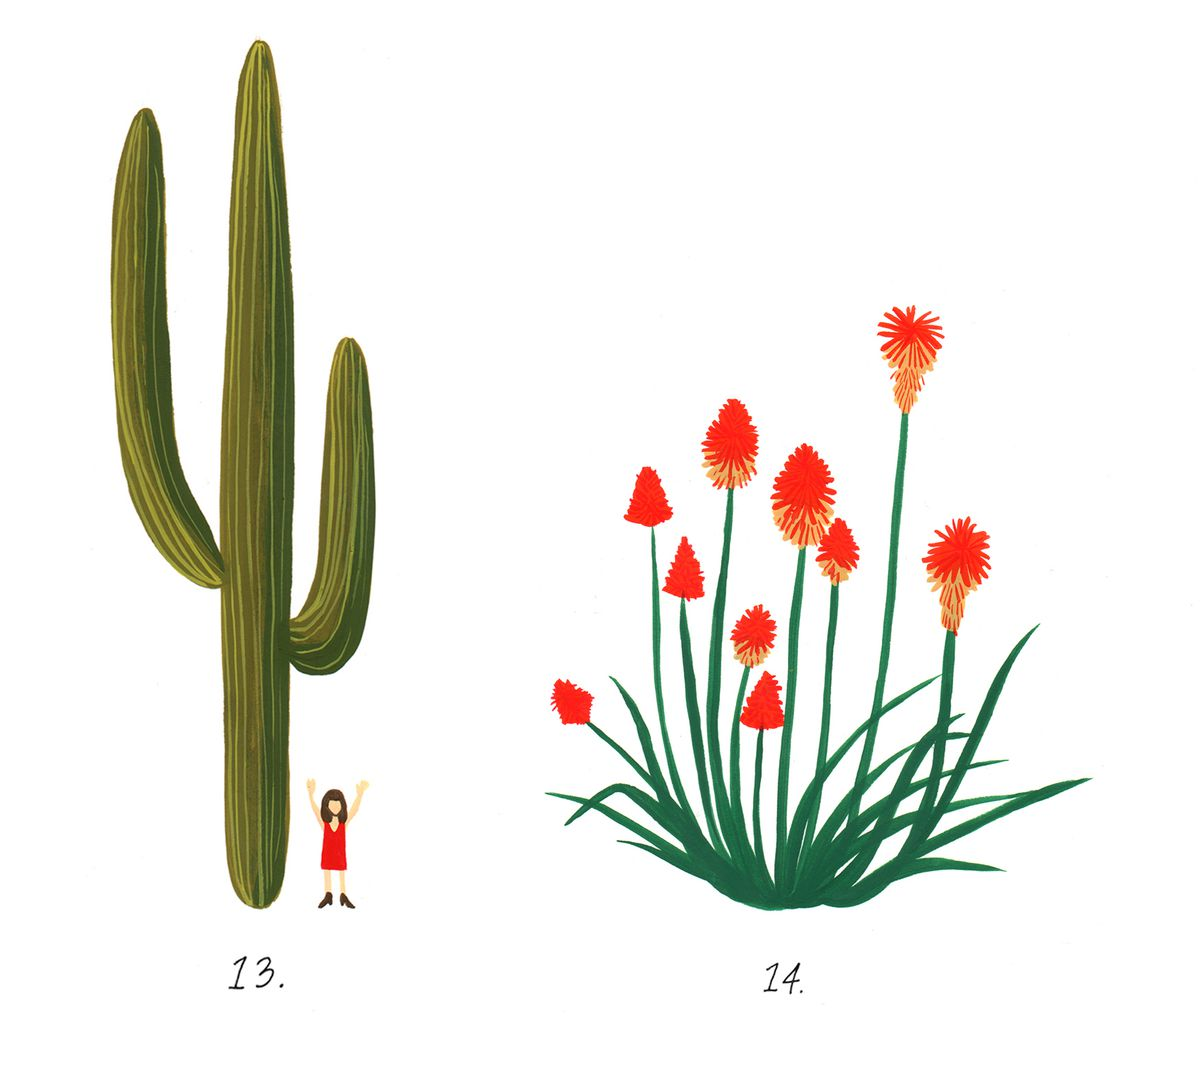 California desert plants: An illustrated guide - Curbed LA